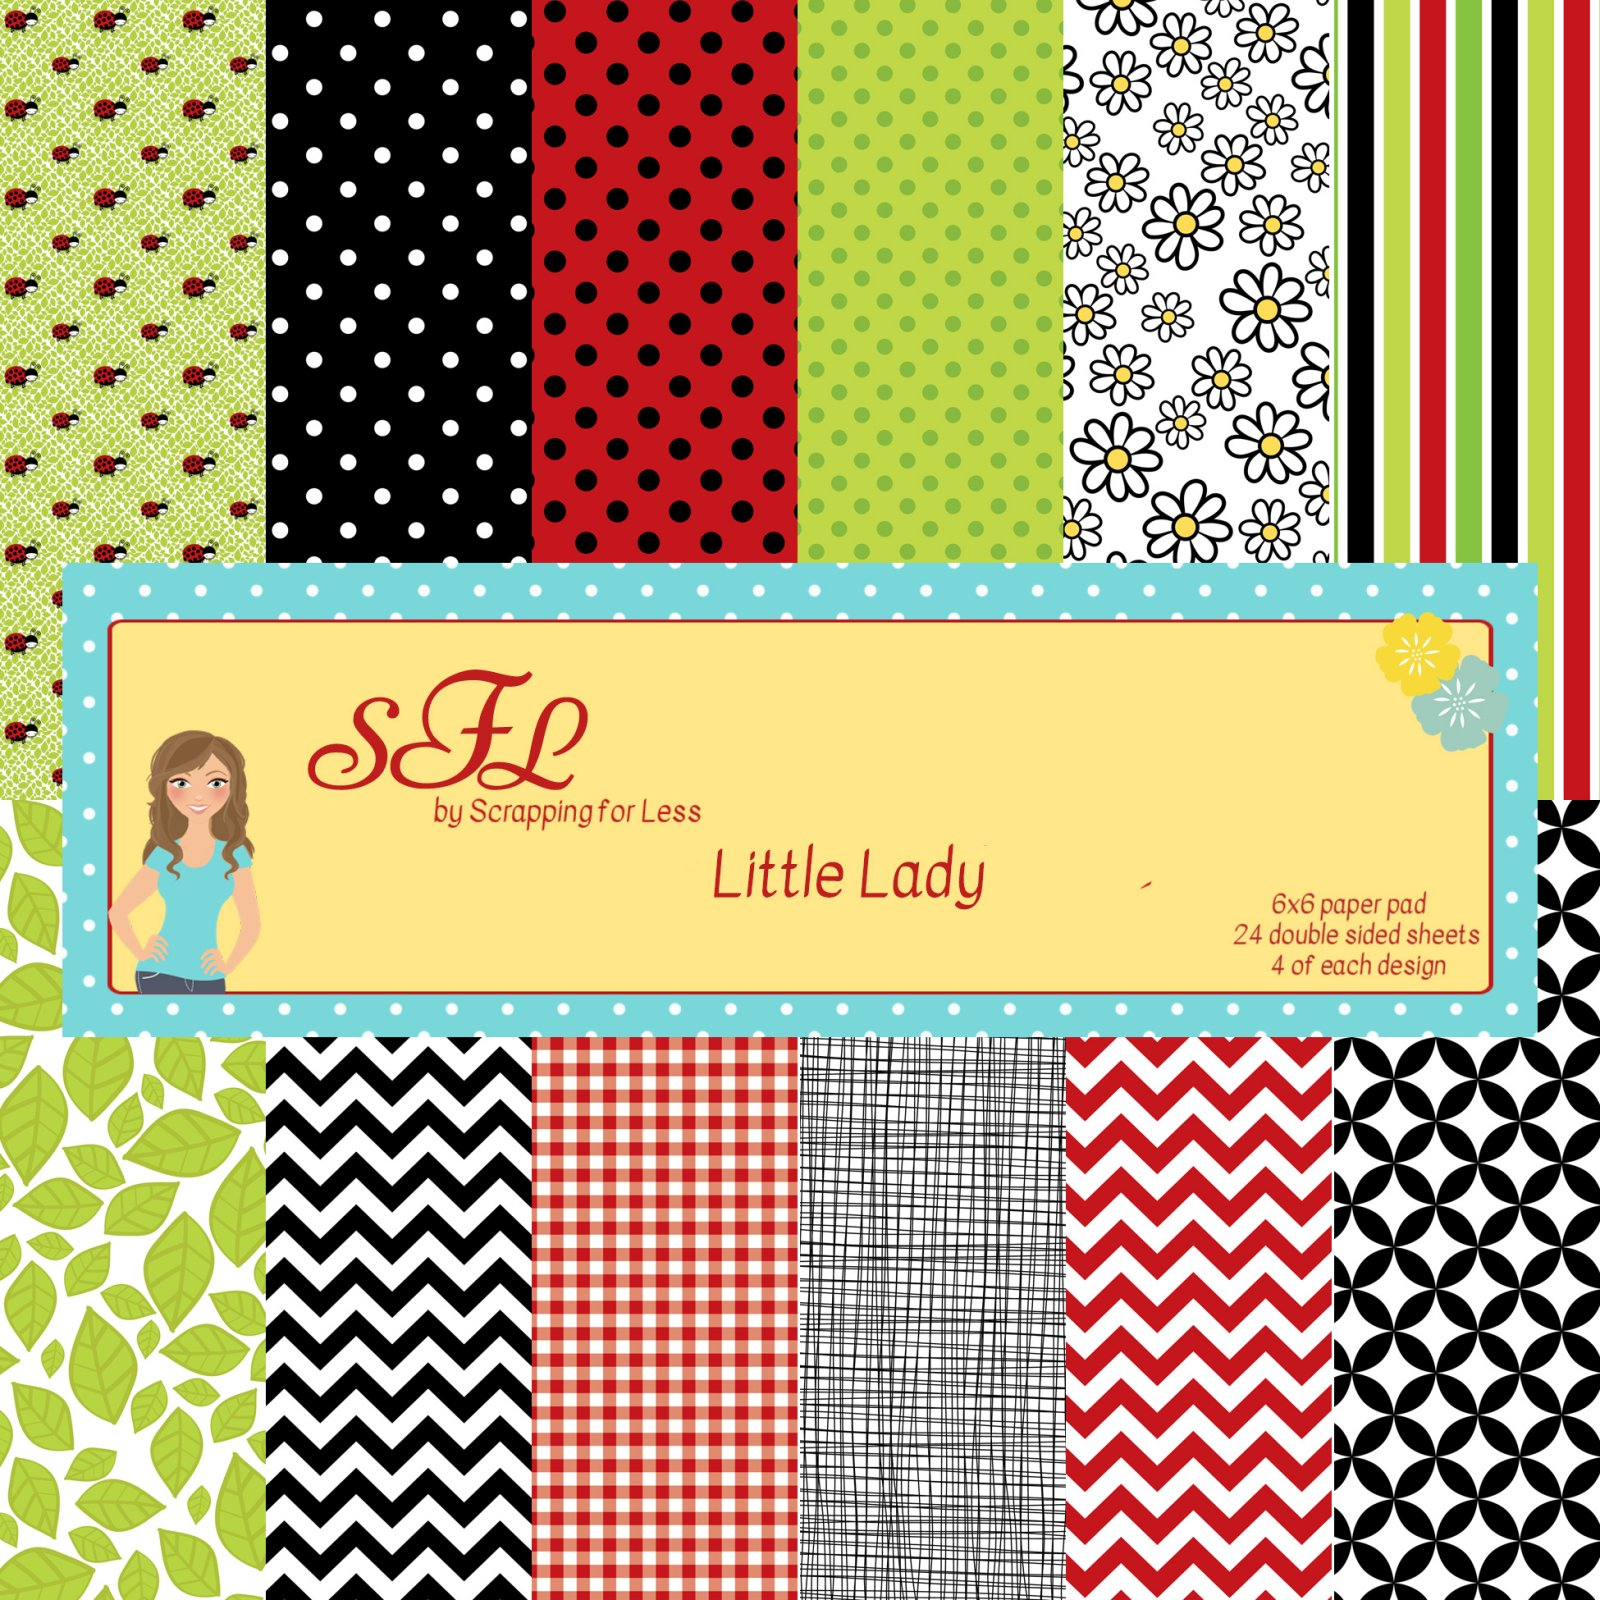 Scrapping for Less Little Lady 6x6 Paper Pad